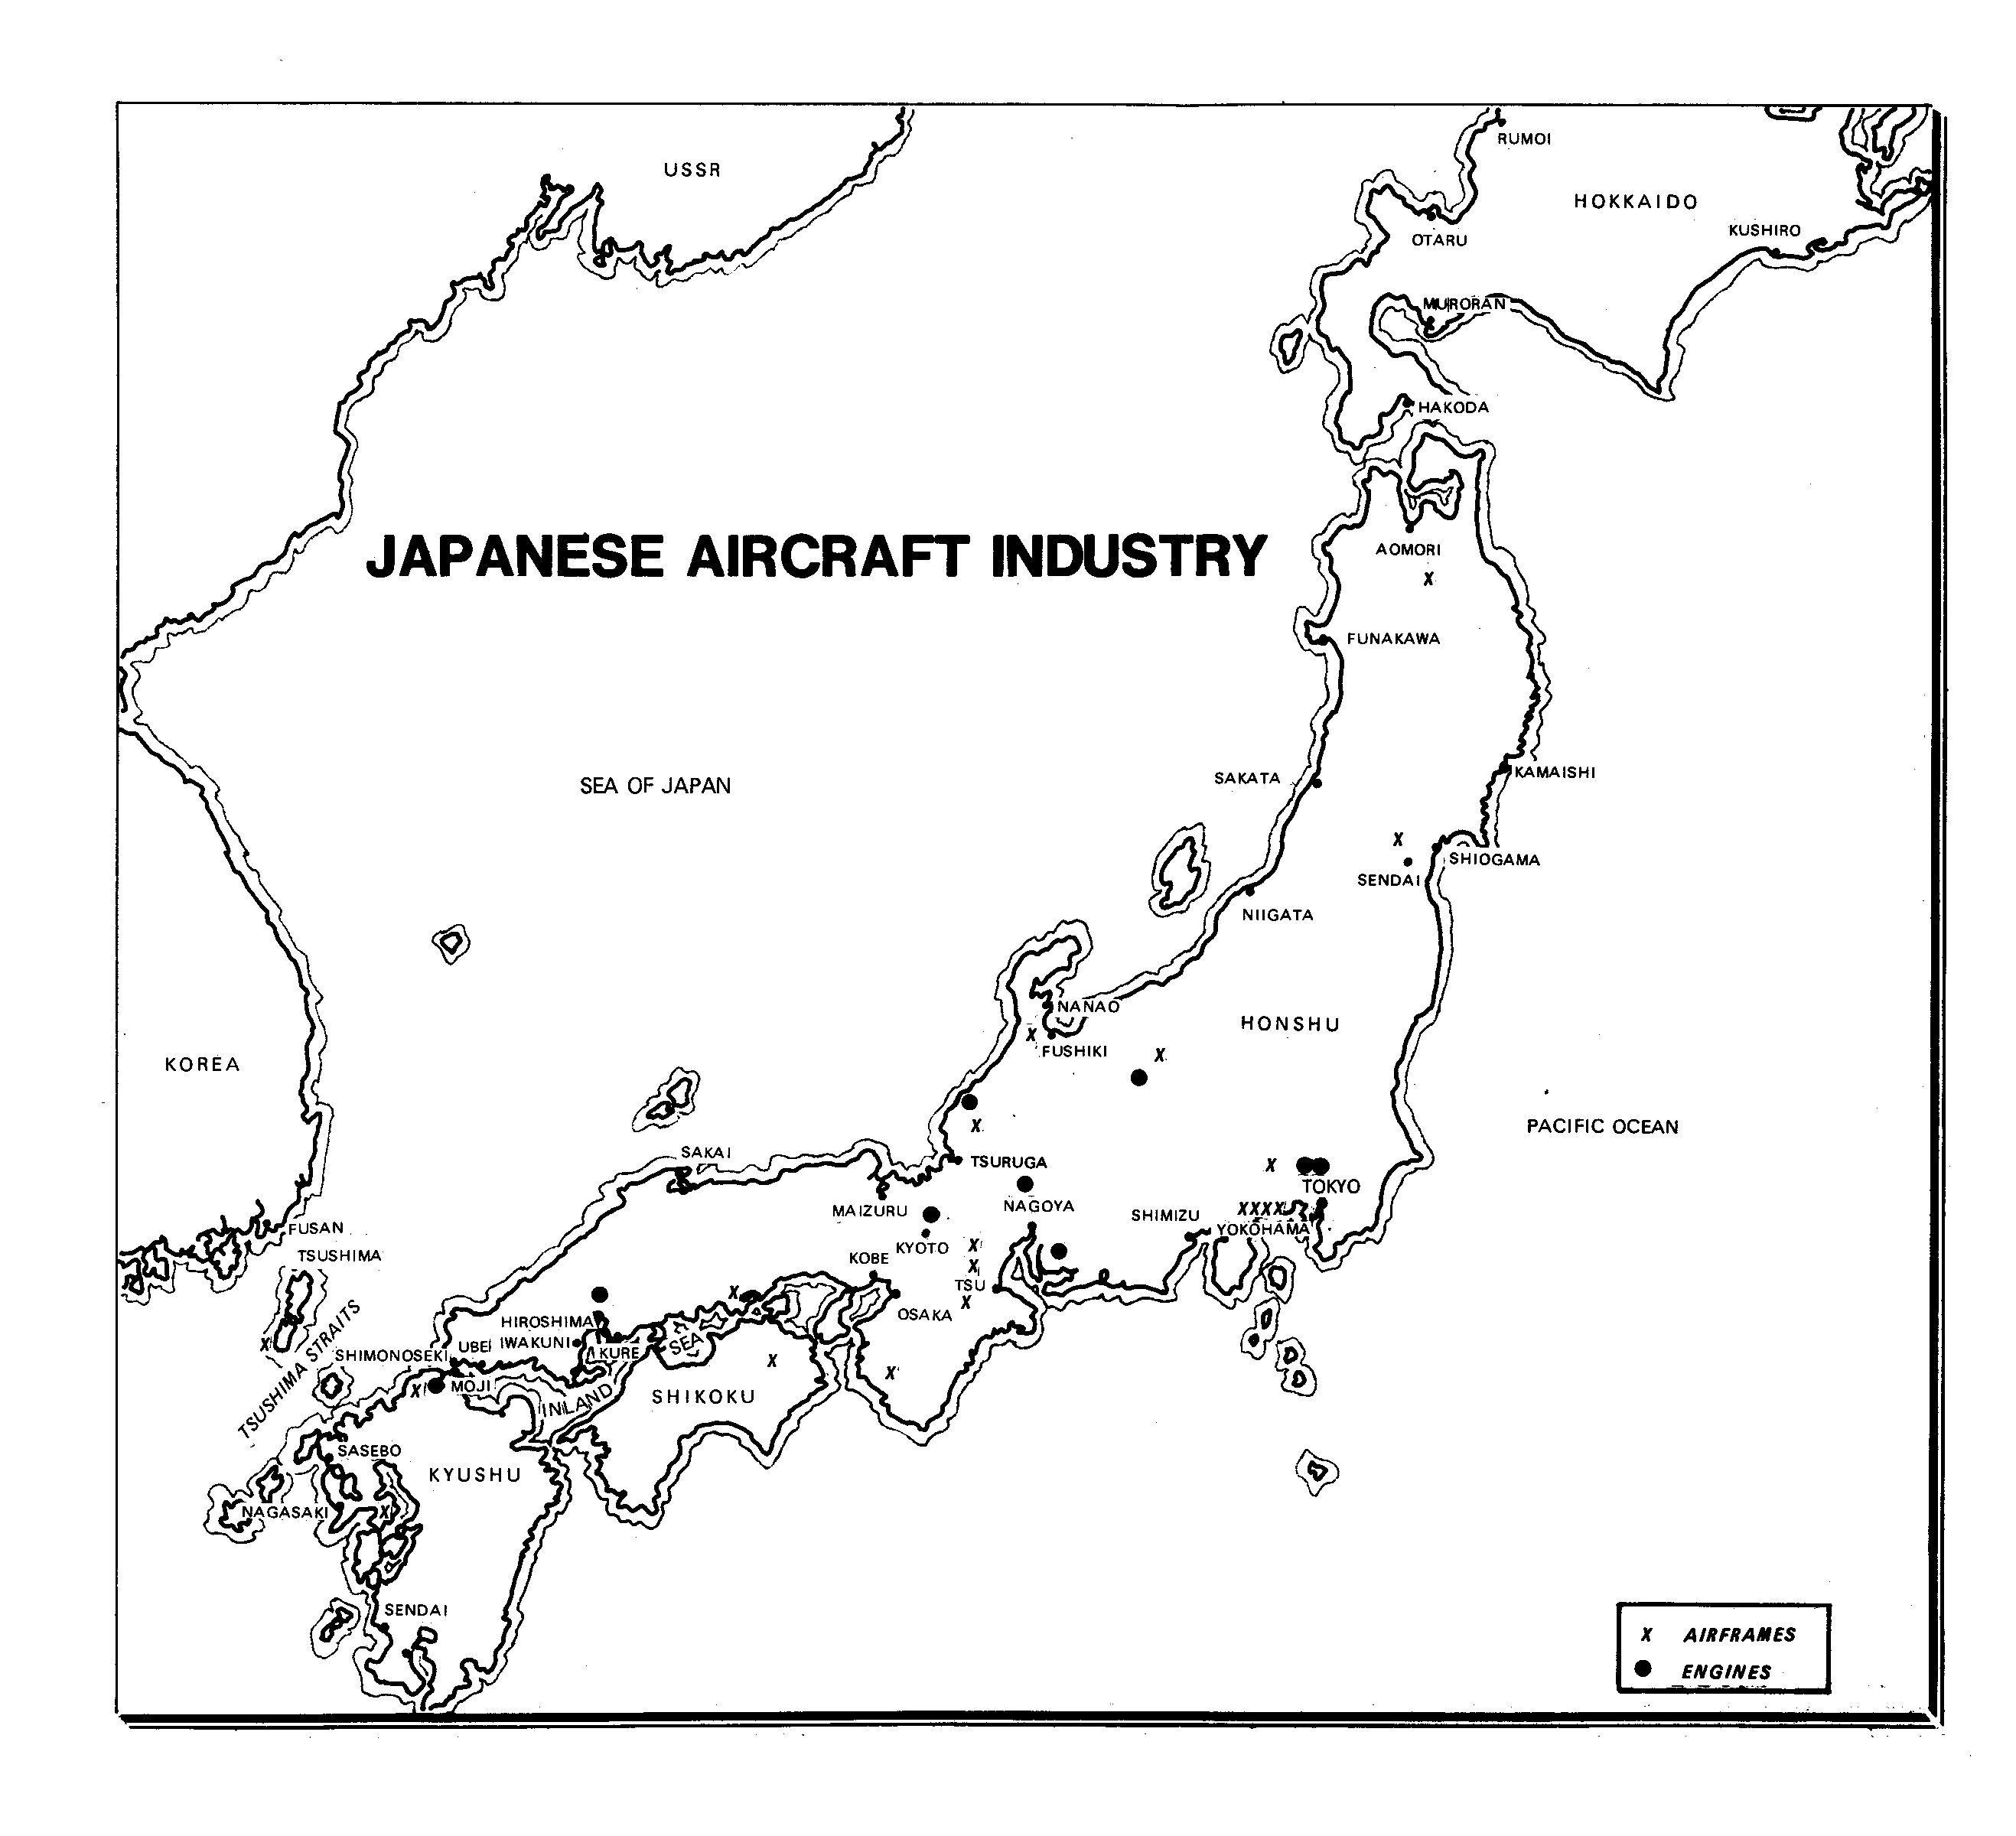 Map Of The Japanese Aircraft Industry